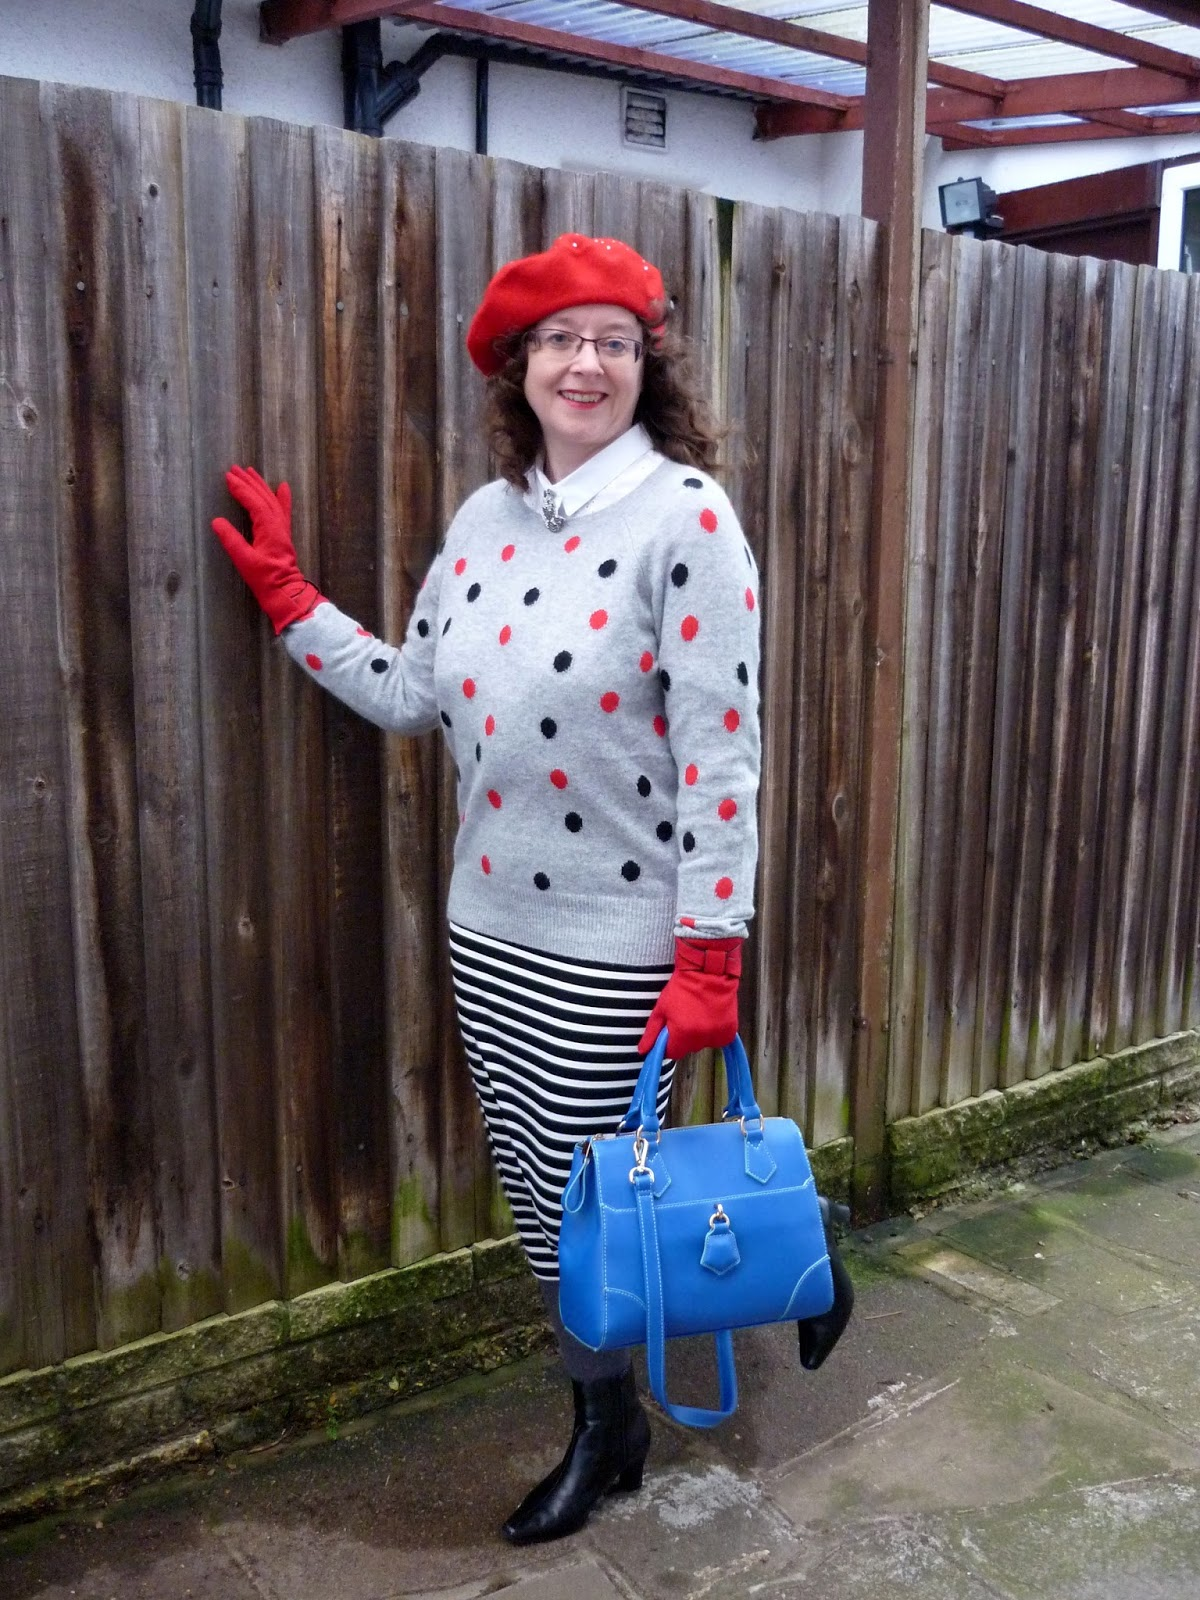 Black/White Striped Midi Pencil Skirt, Red/Black Polka Dot Jumper, Cobalt Blue Bag, Red Gloves & Beret | Petite Silver Vixen